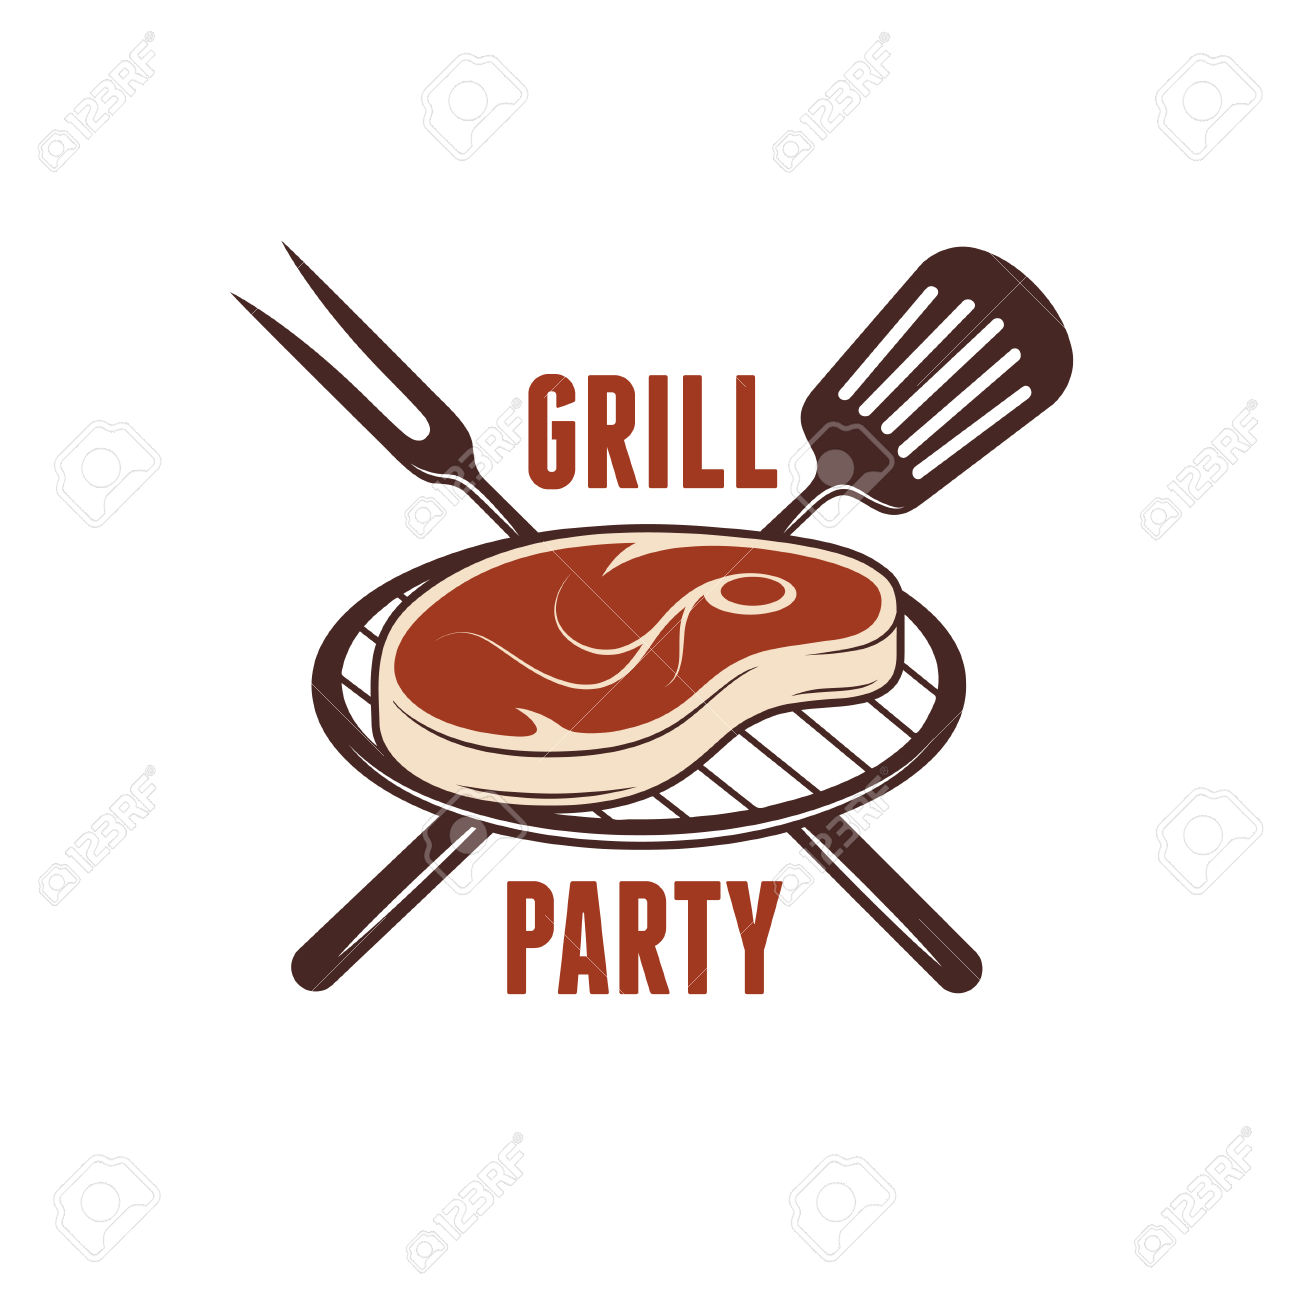 Barbecue clipart barbecue meat Party meat clipart Barbecue Grill